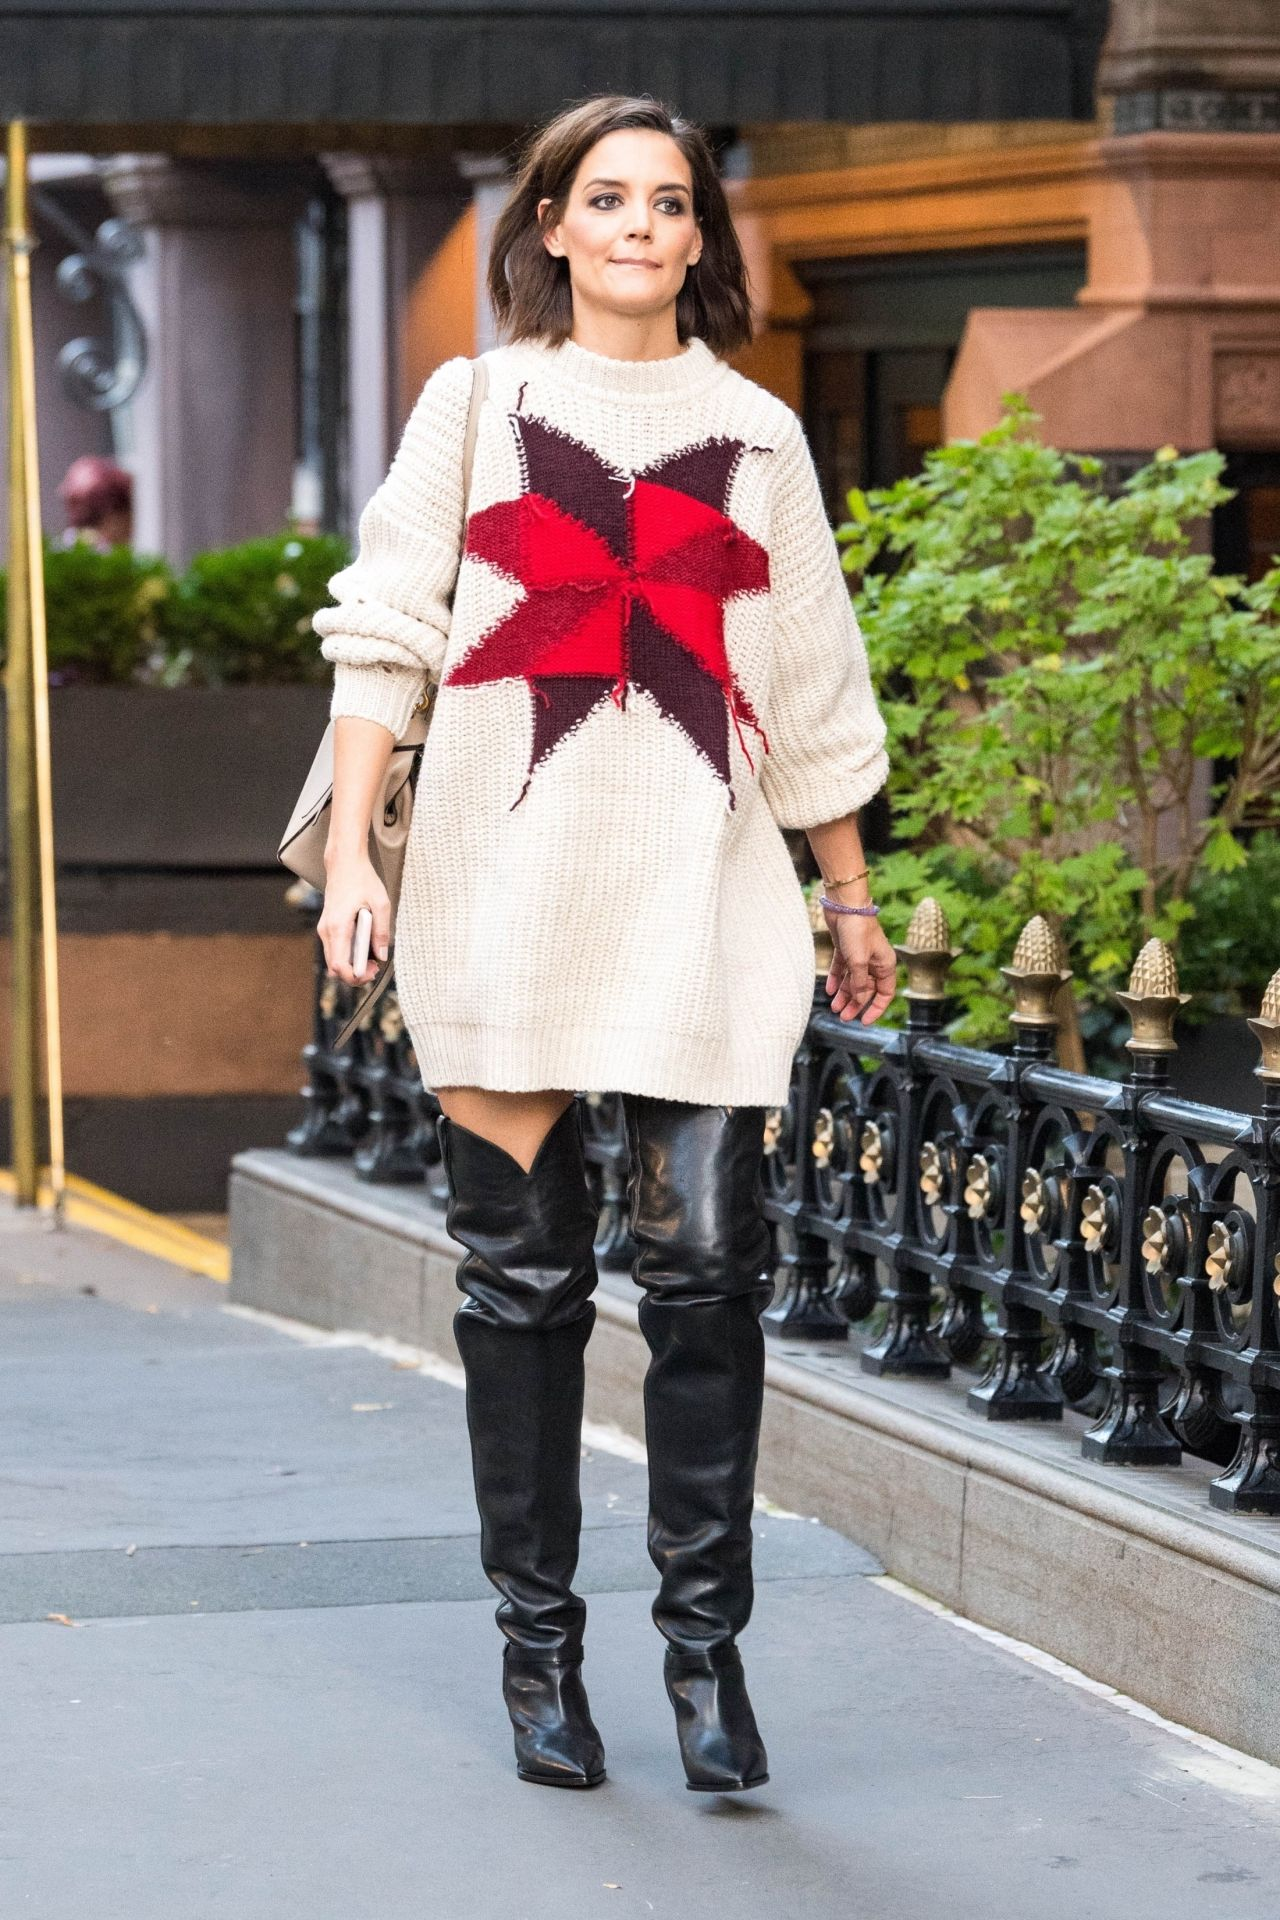 Katie Holmes Style And Fashion NYC 10102018